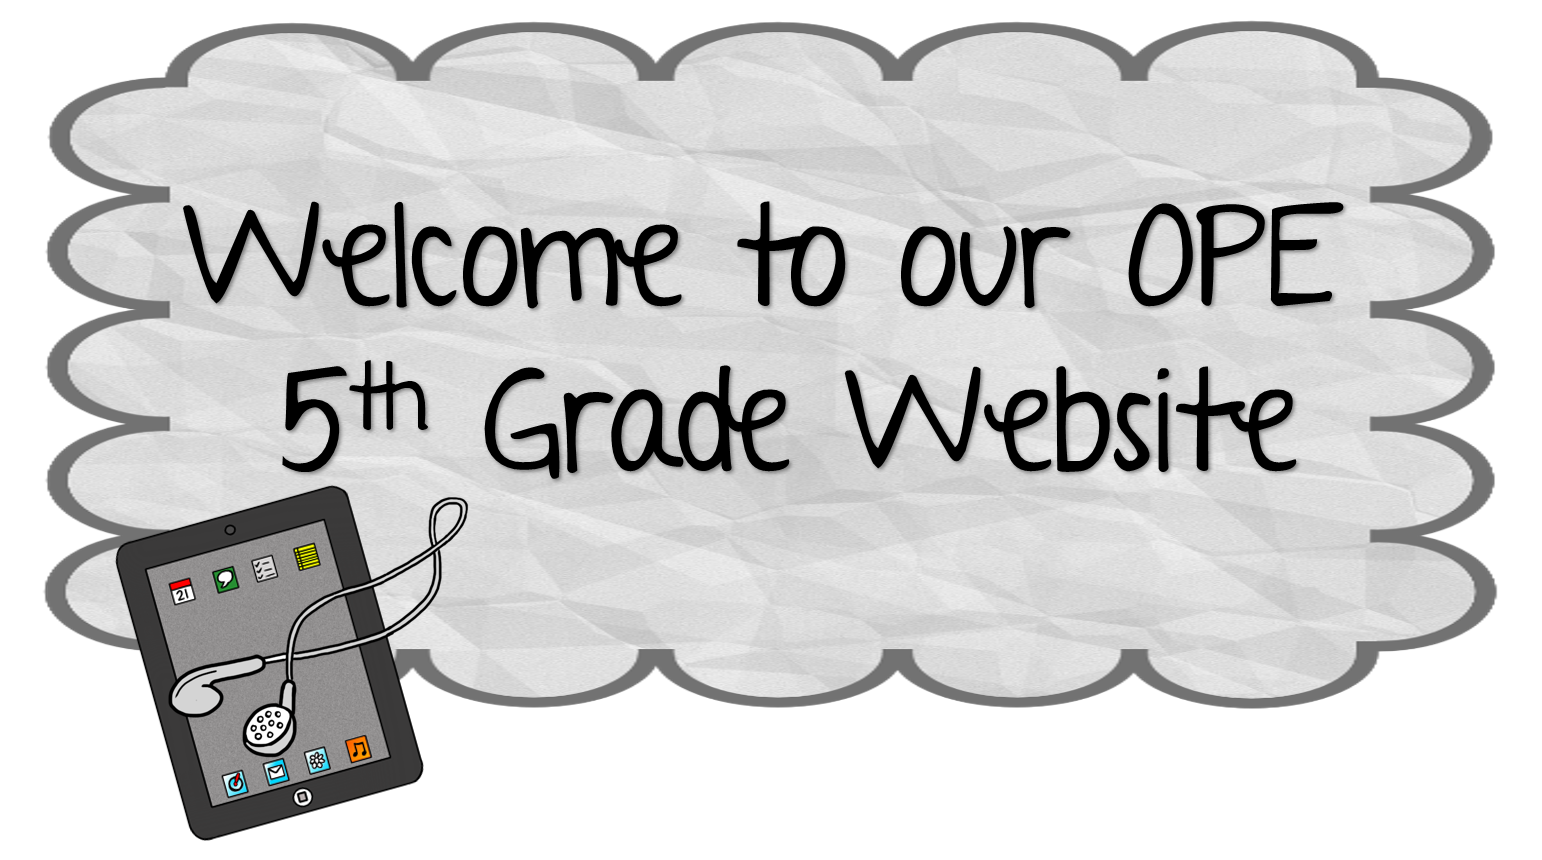 OPE 5th grade website banner